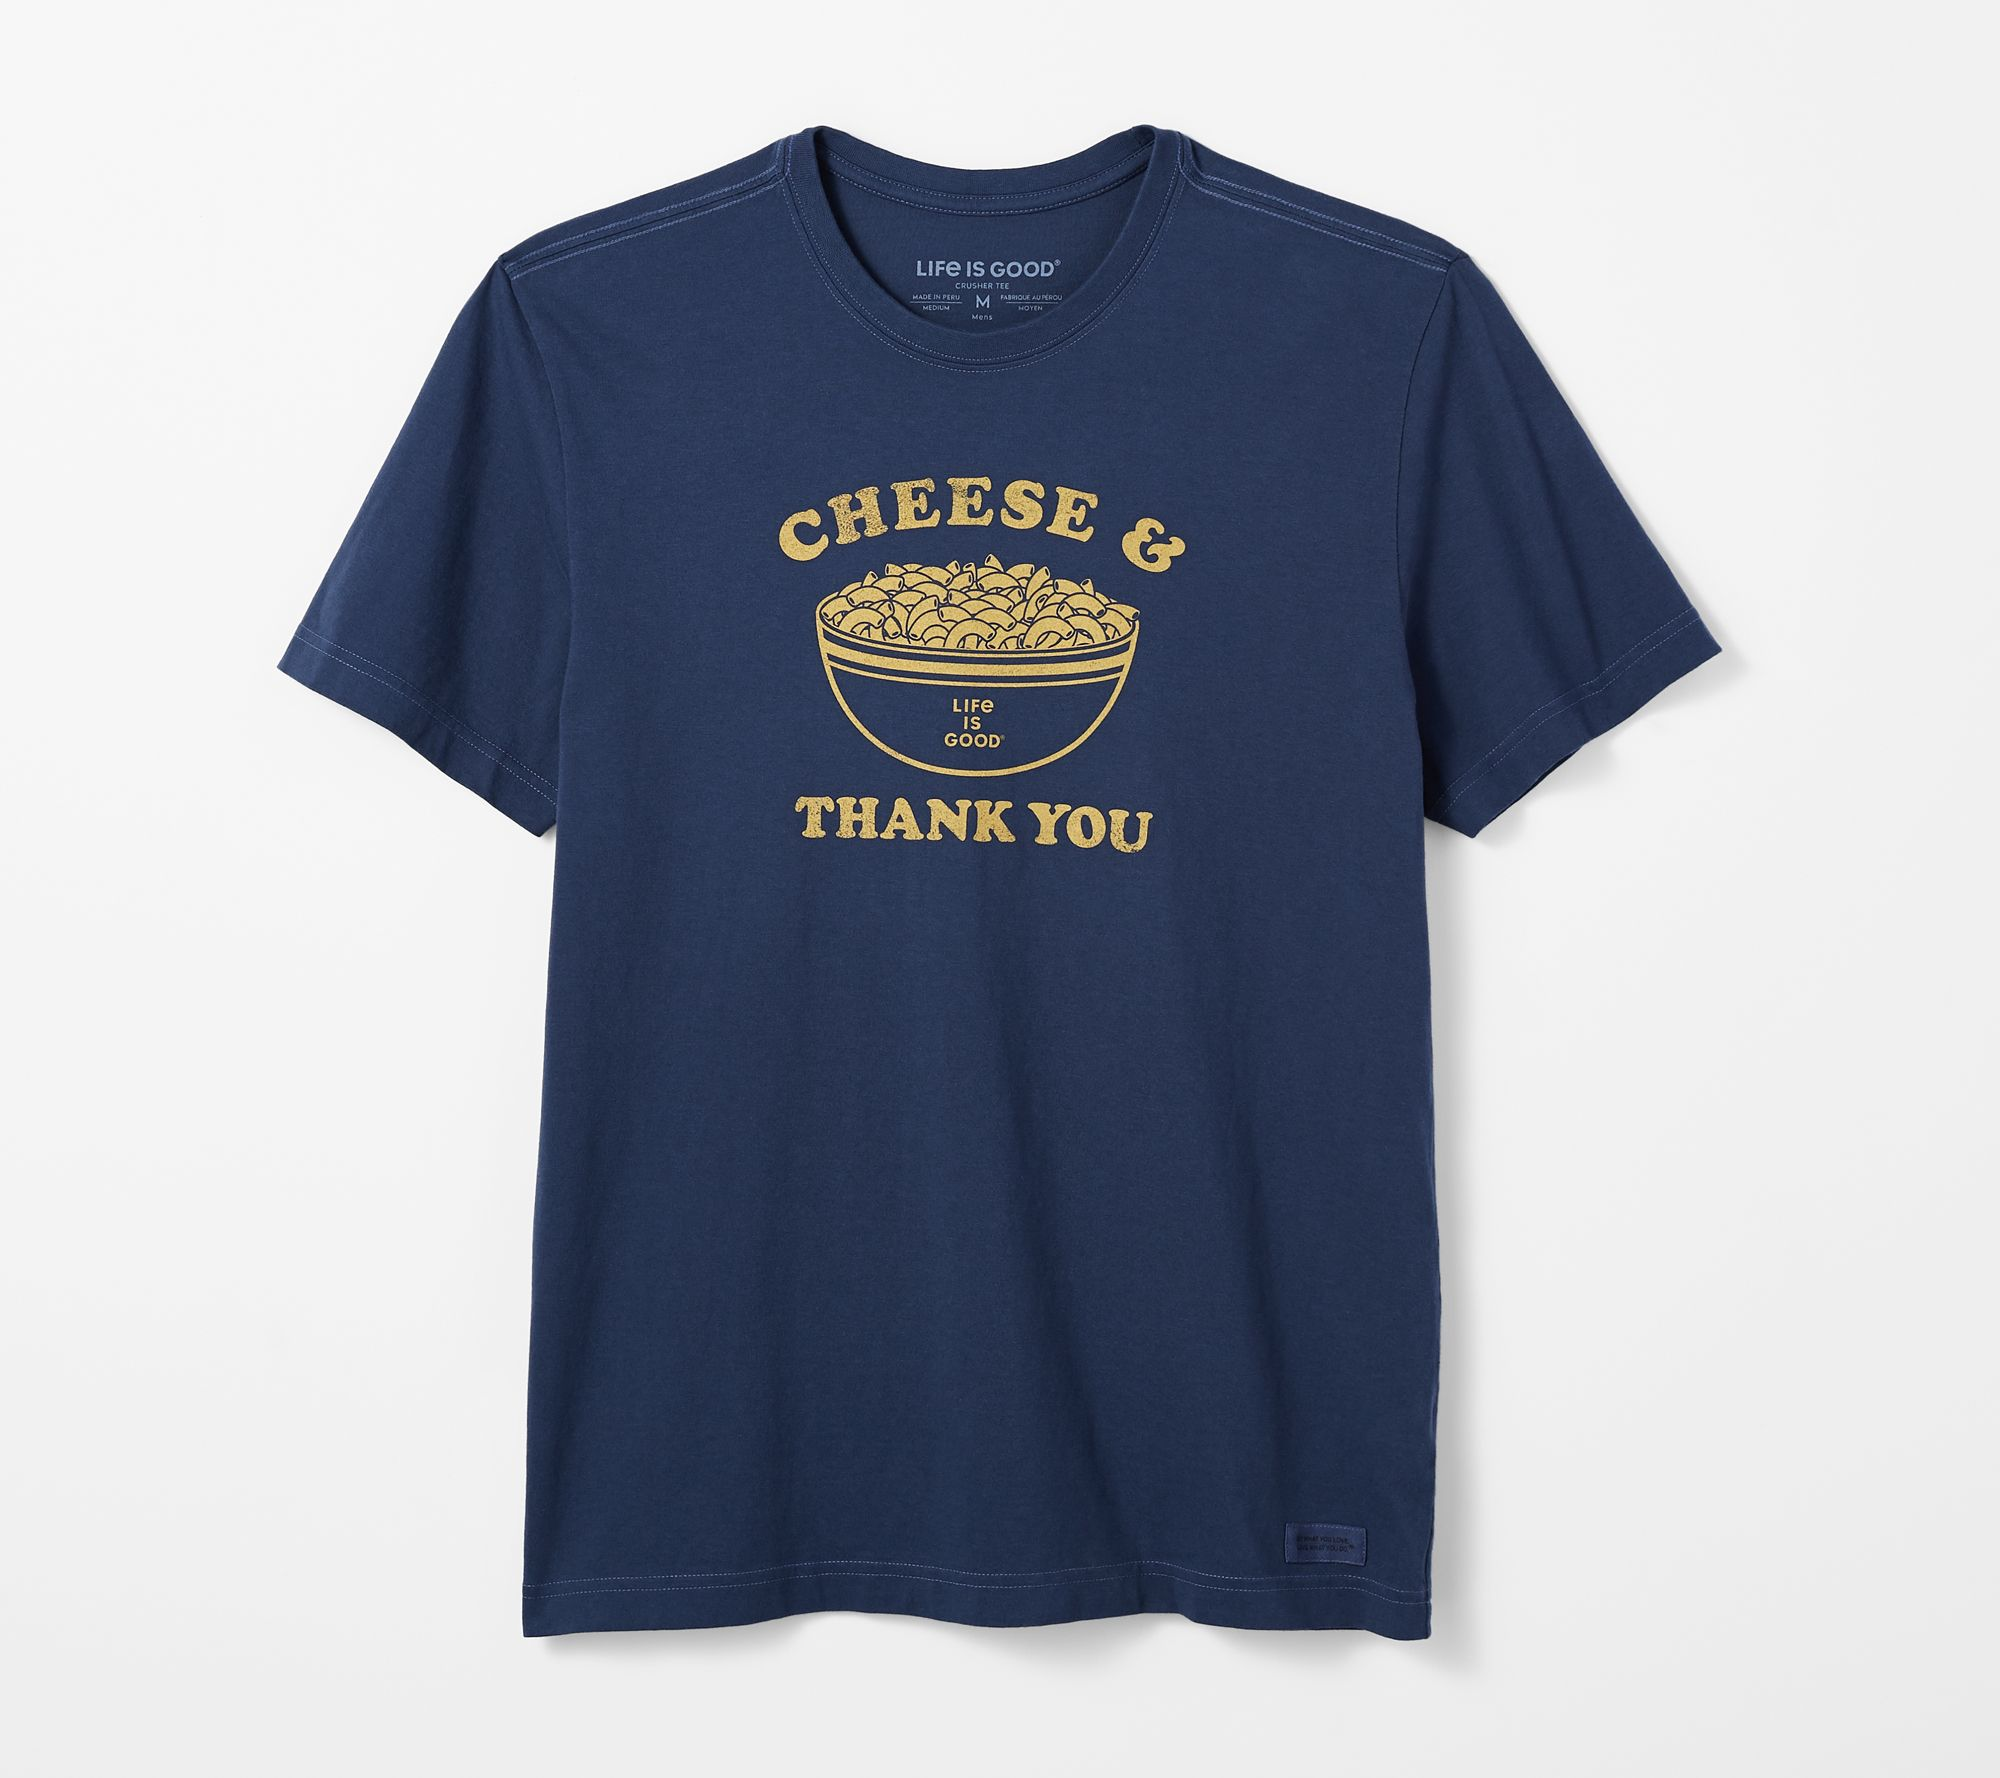 f543db7a00c Life is Good Men s In the Kitchen Short Sleeve Crusher Tee - Page 1 —  QVC.com